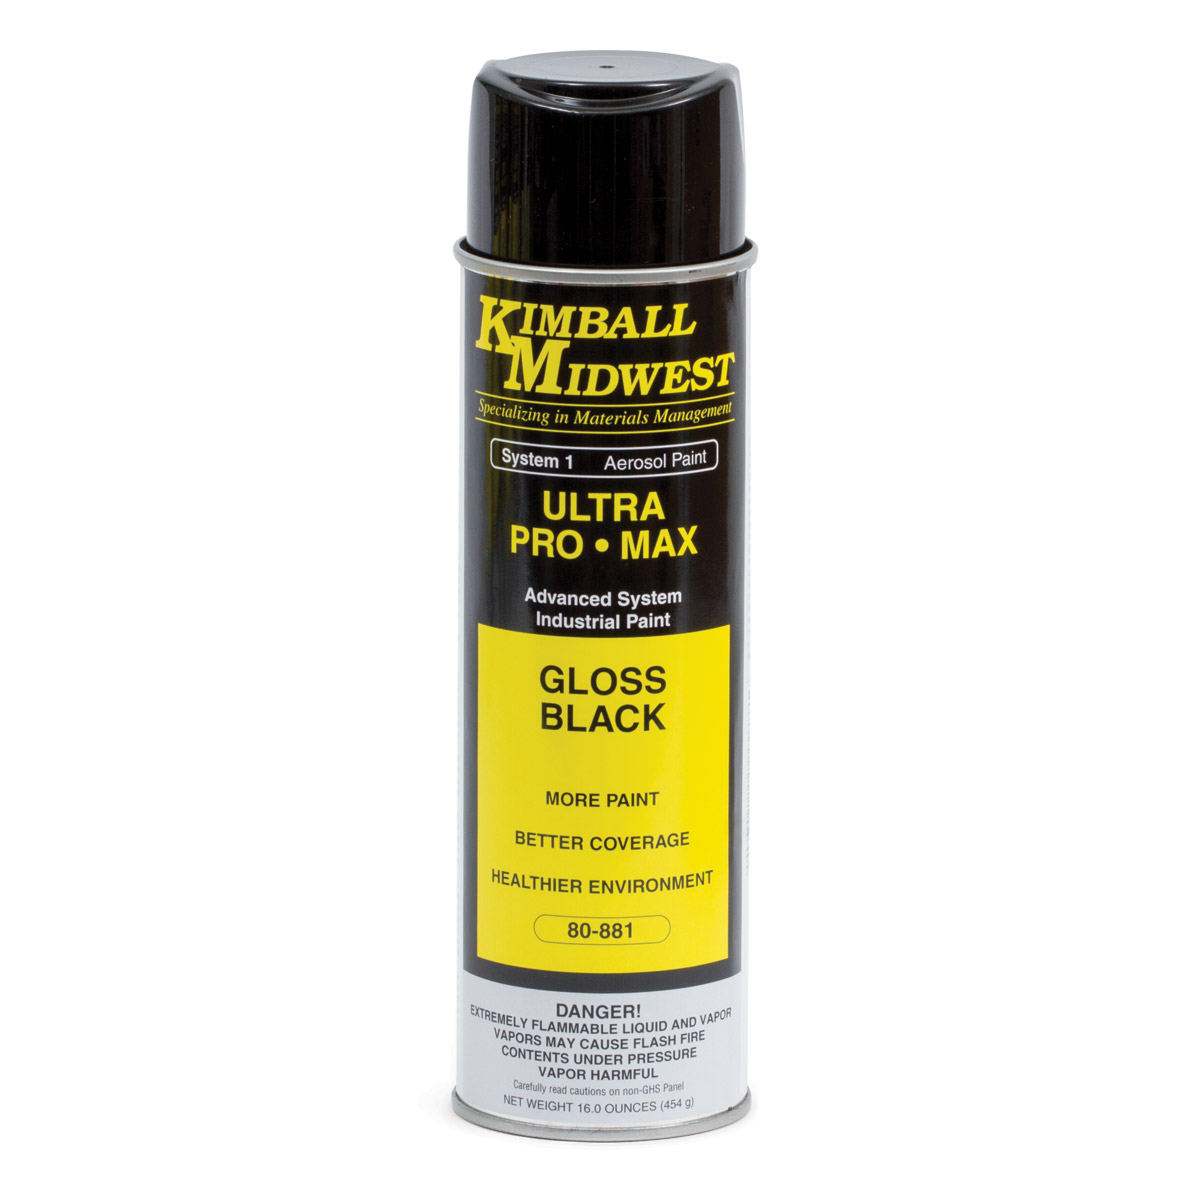 Product detail kimball midwest Spray paint supplies